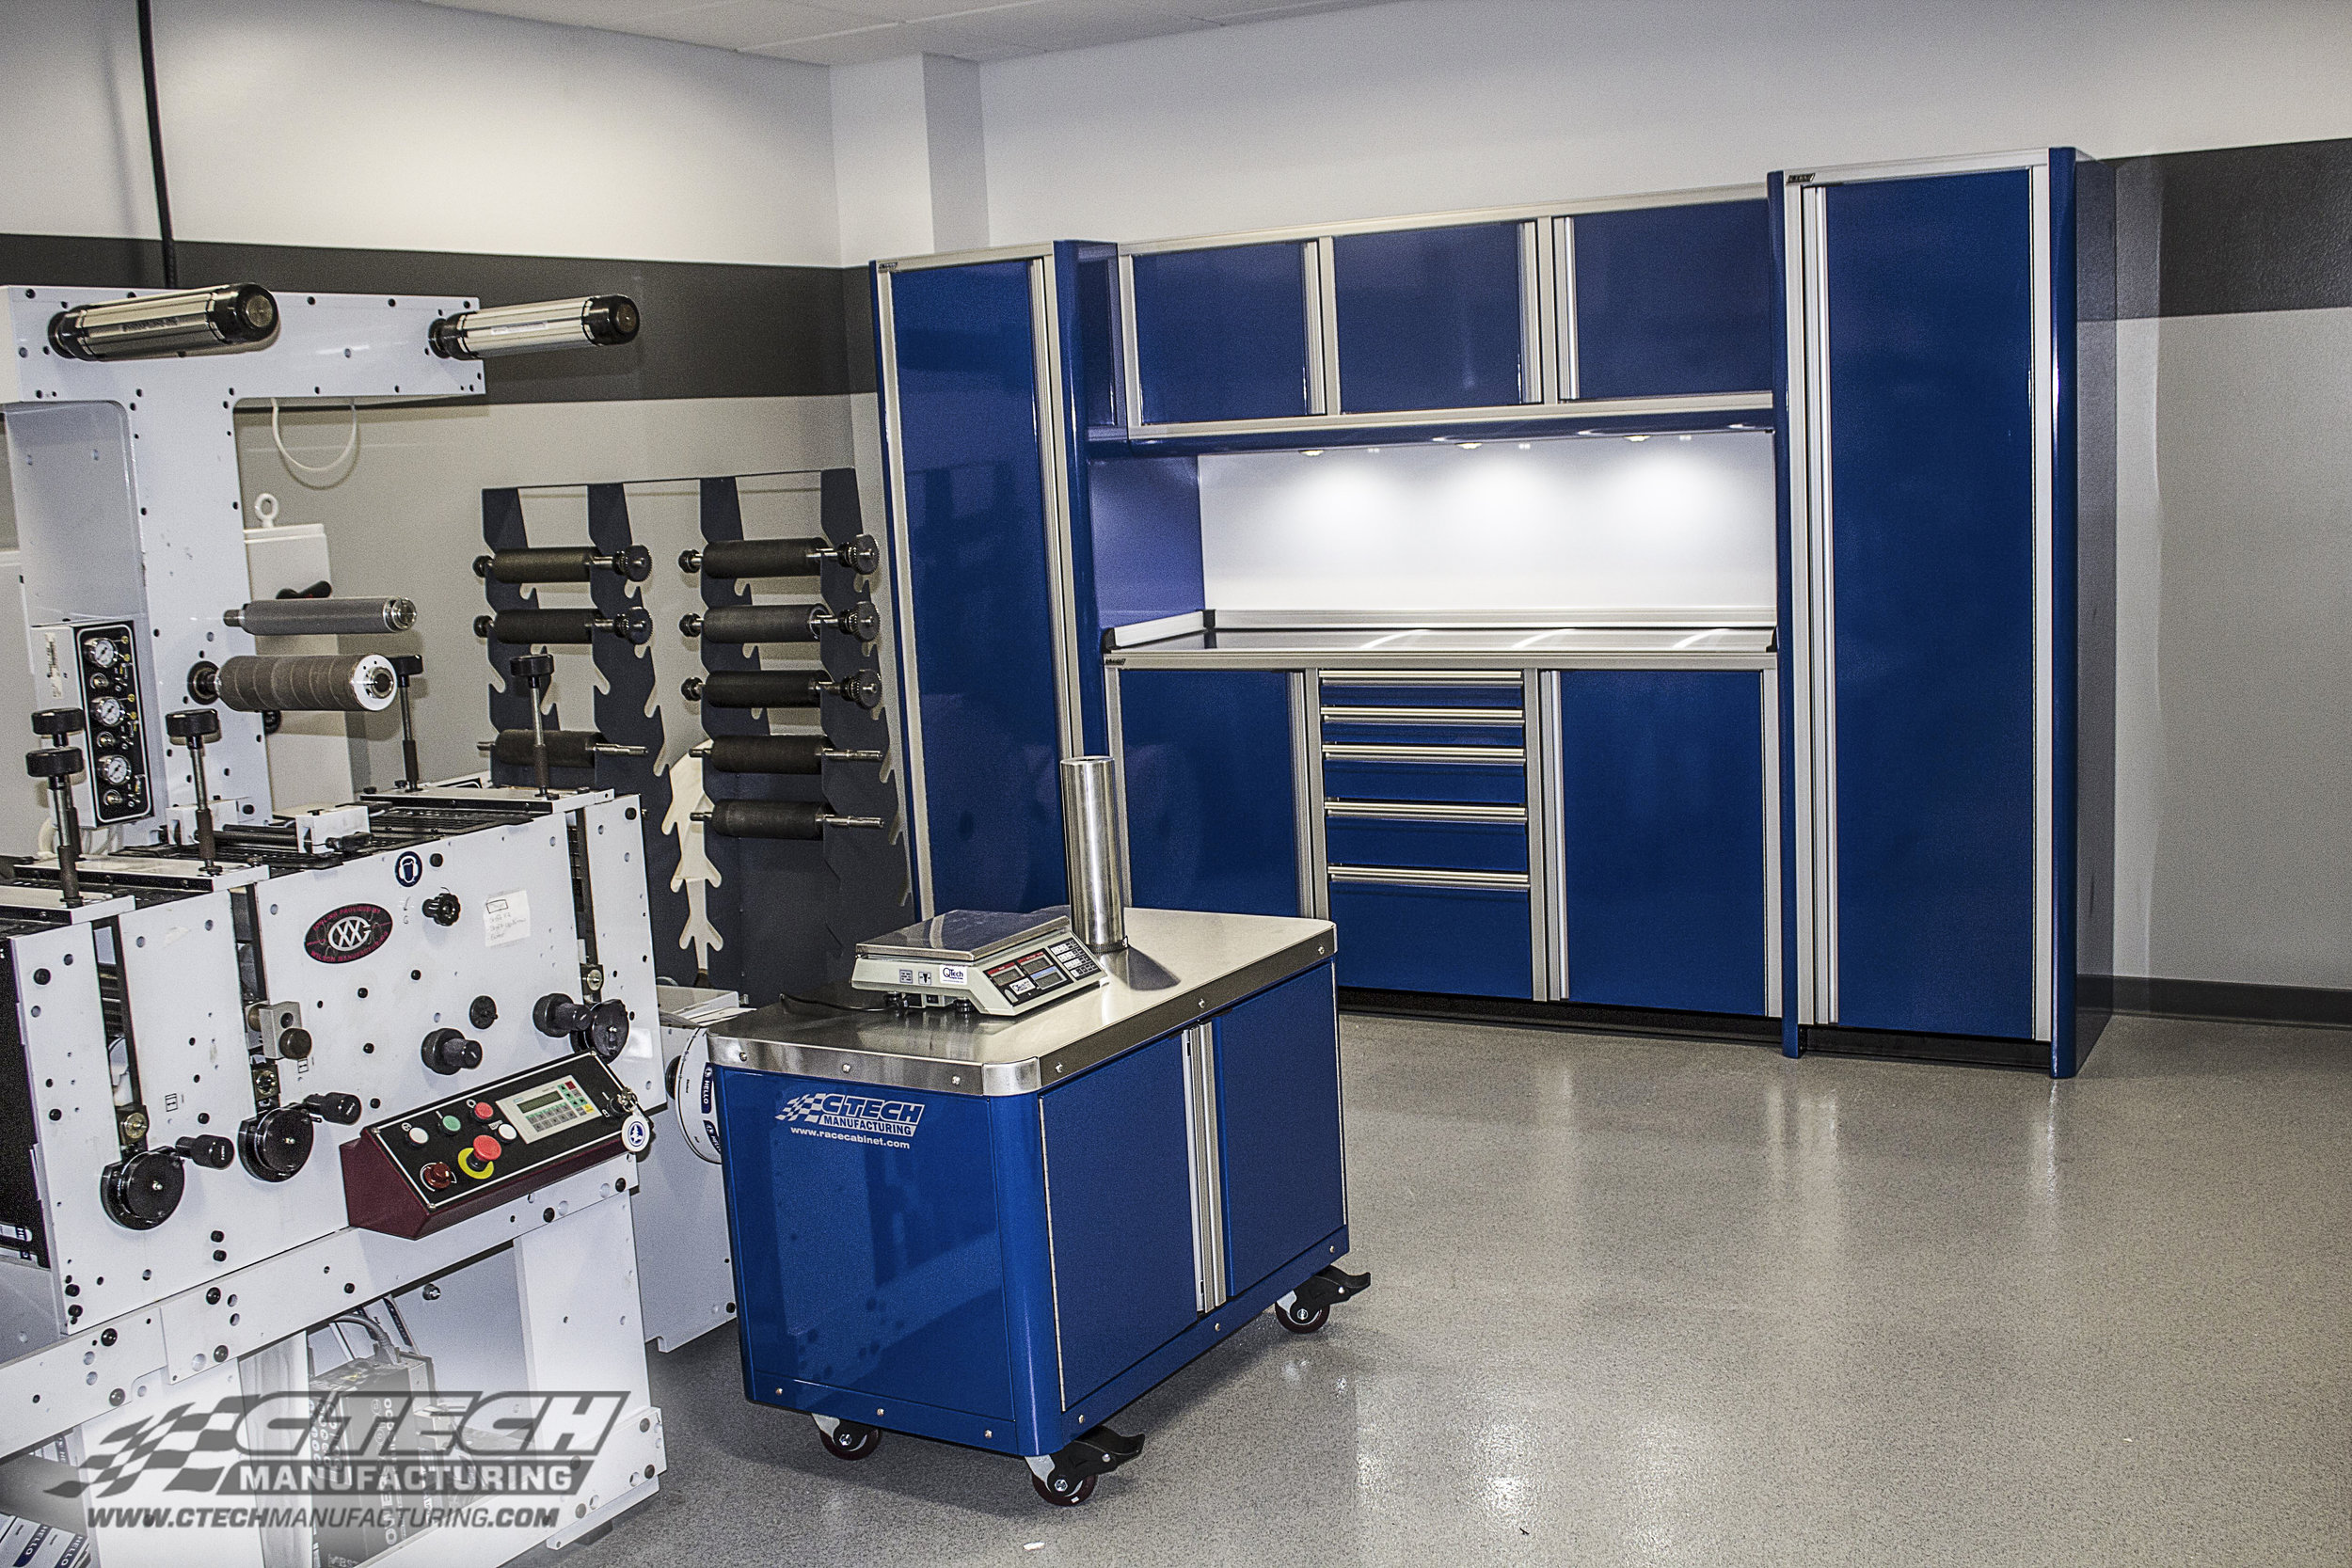 CTECH Caster Carts make excellent fabrication and machine operator sidekicks. NorthCentral Technical College's mill room is better equipped than ever with this setup! We even offer Ultra Series stationary cabinet setups with integrated storage carts, ready to order! BOM 31312